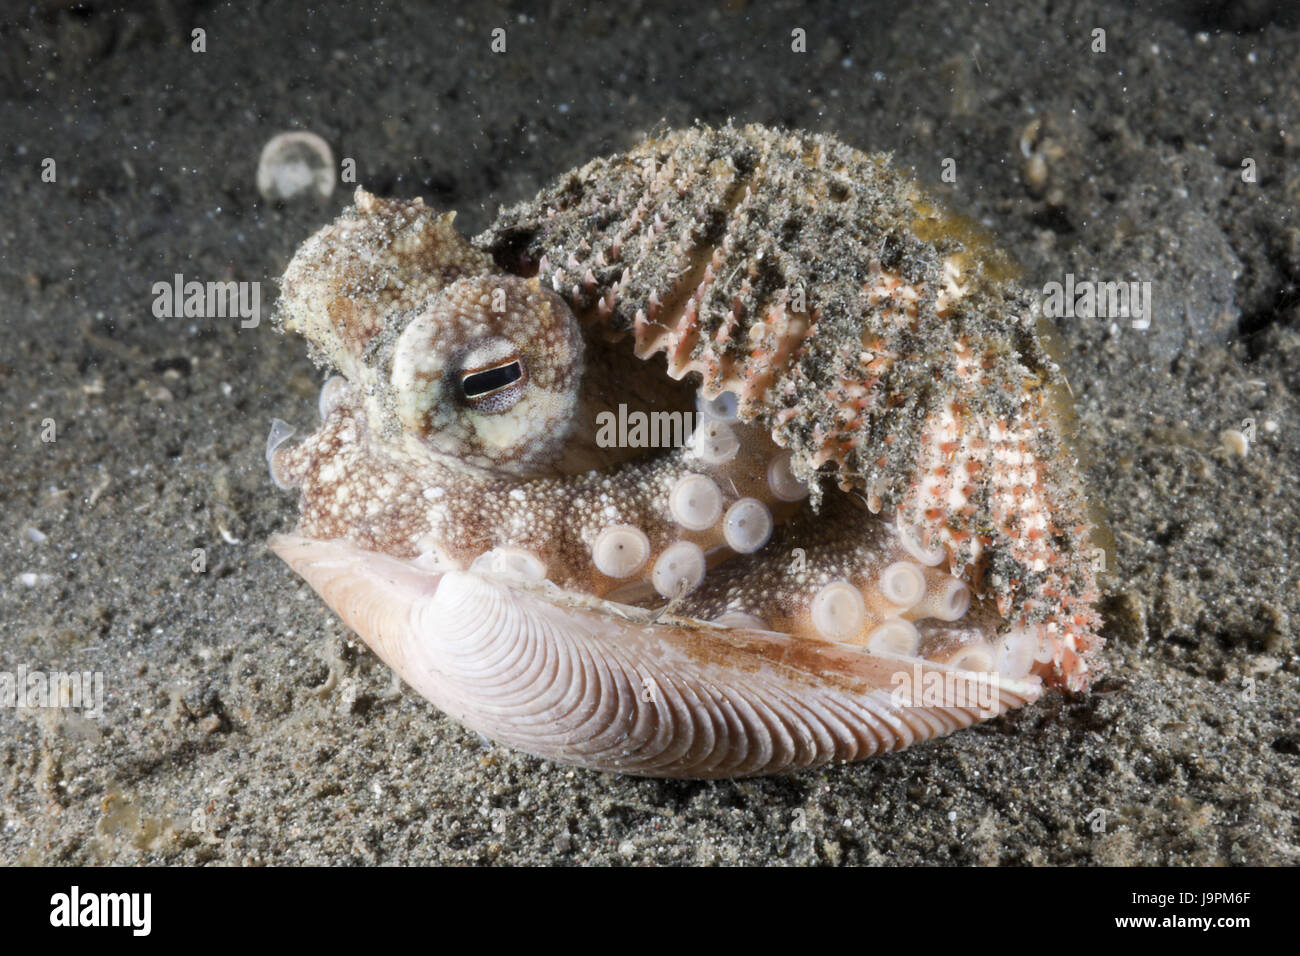 Grained octopus hides himself in mussel,Octopus marginatus,Lembeh Strait,the north Sulawesi,Indonesia, - Stock Image